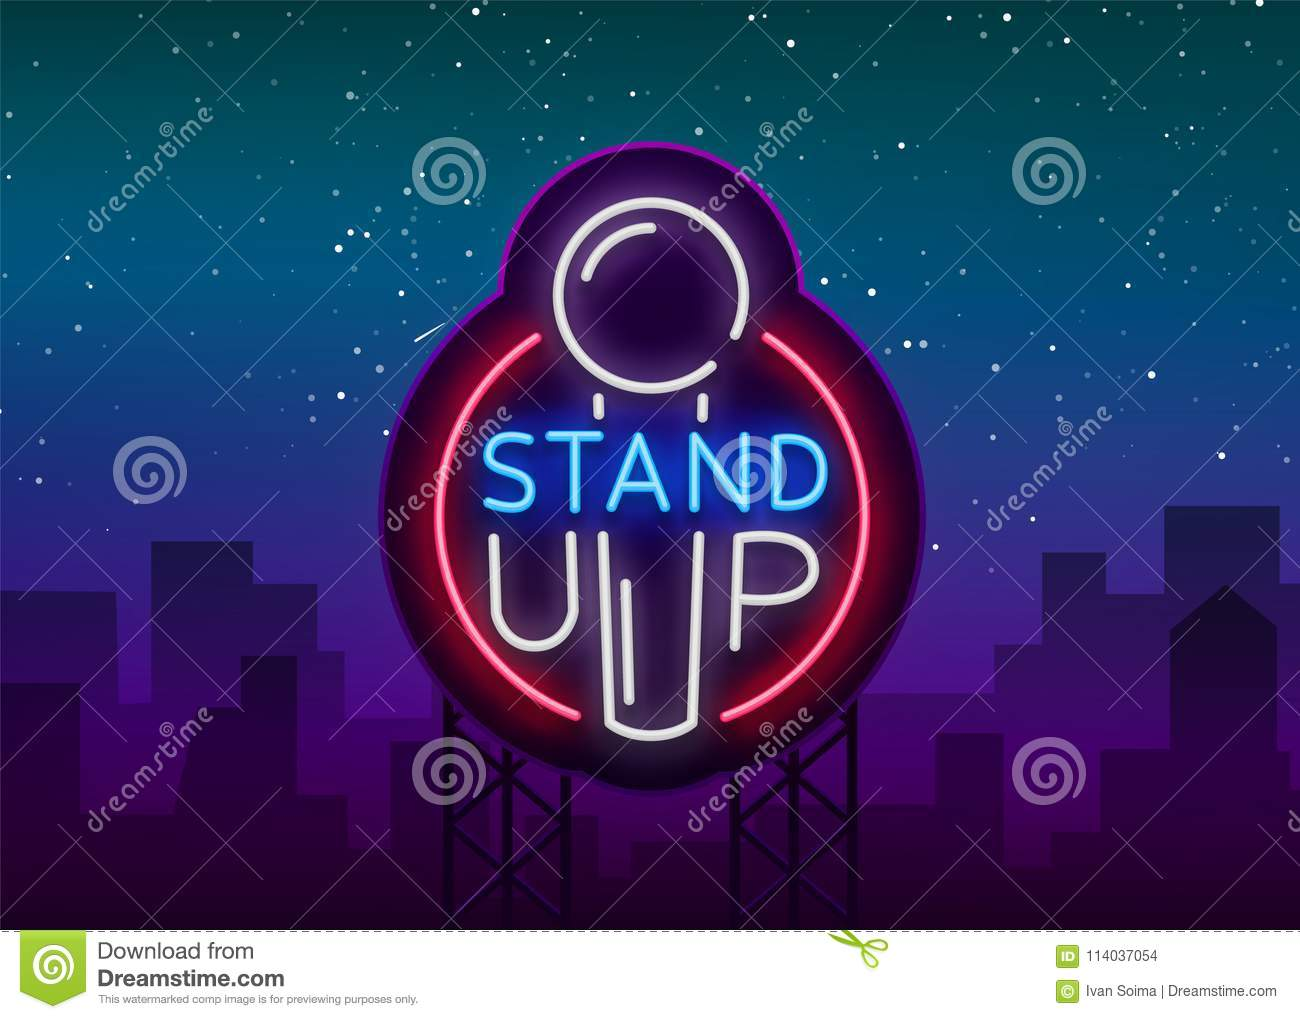 Stand Up Logo in Neon Style. Comedy show is neon sign, symbol, an invitation to a comedy performance, bright banner